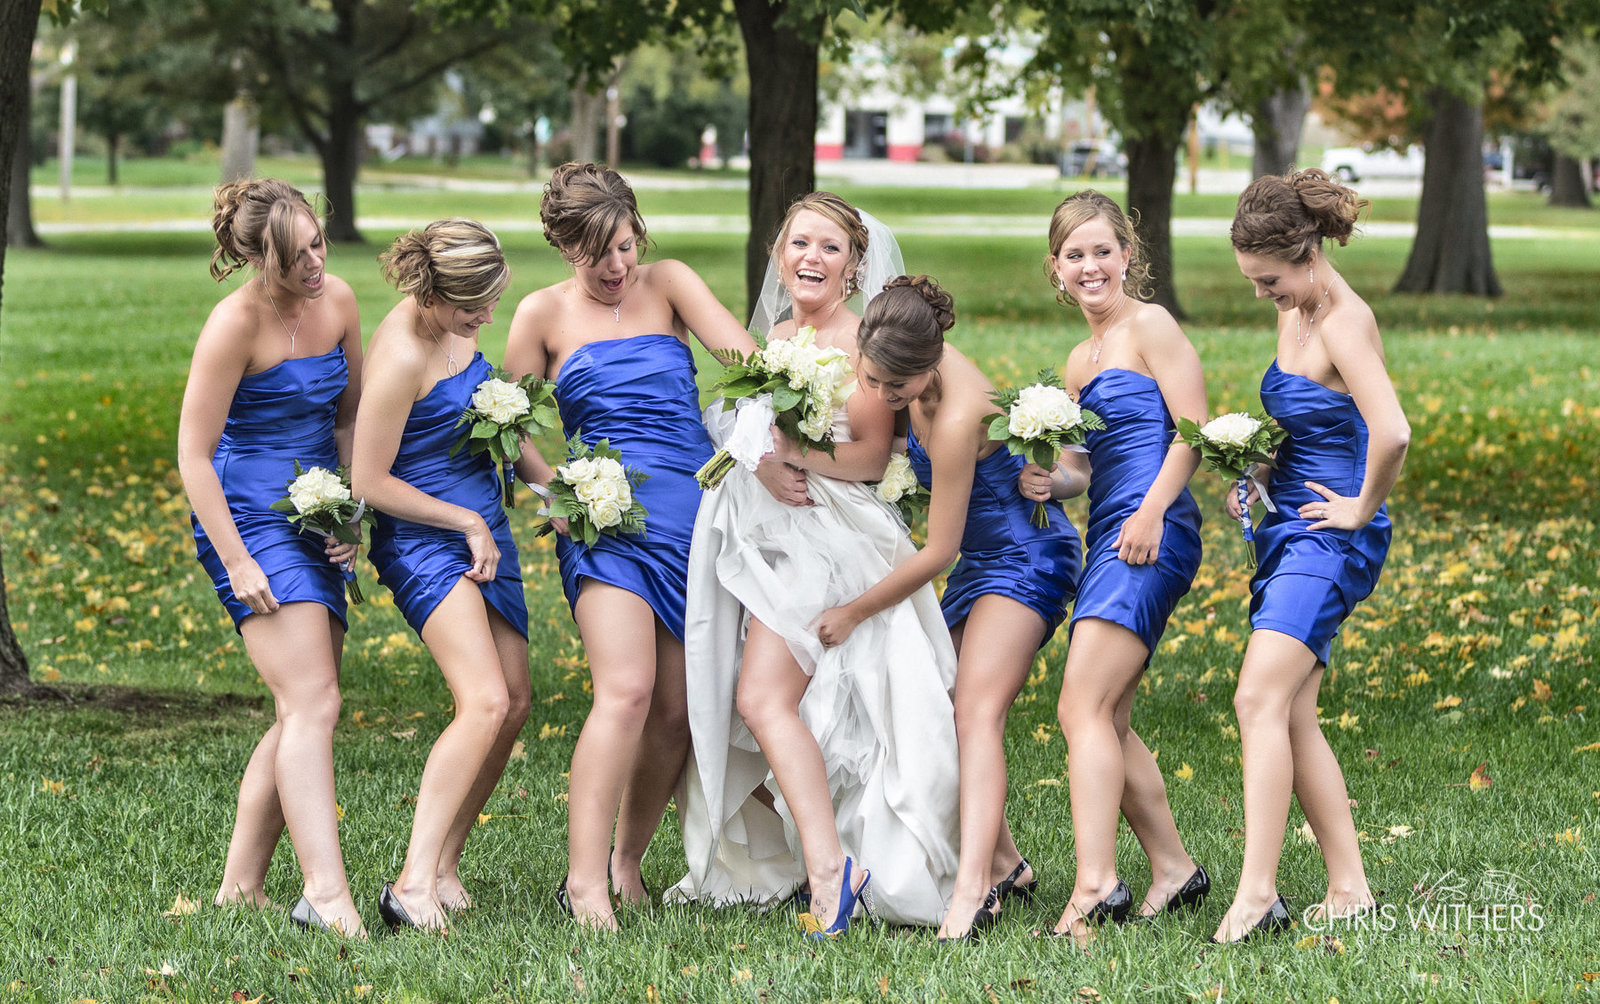 Springfield Illinois Wedding Photographer - Chris Withers Photography (1 of 16)